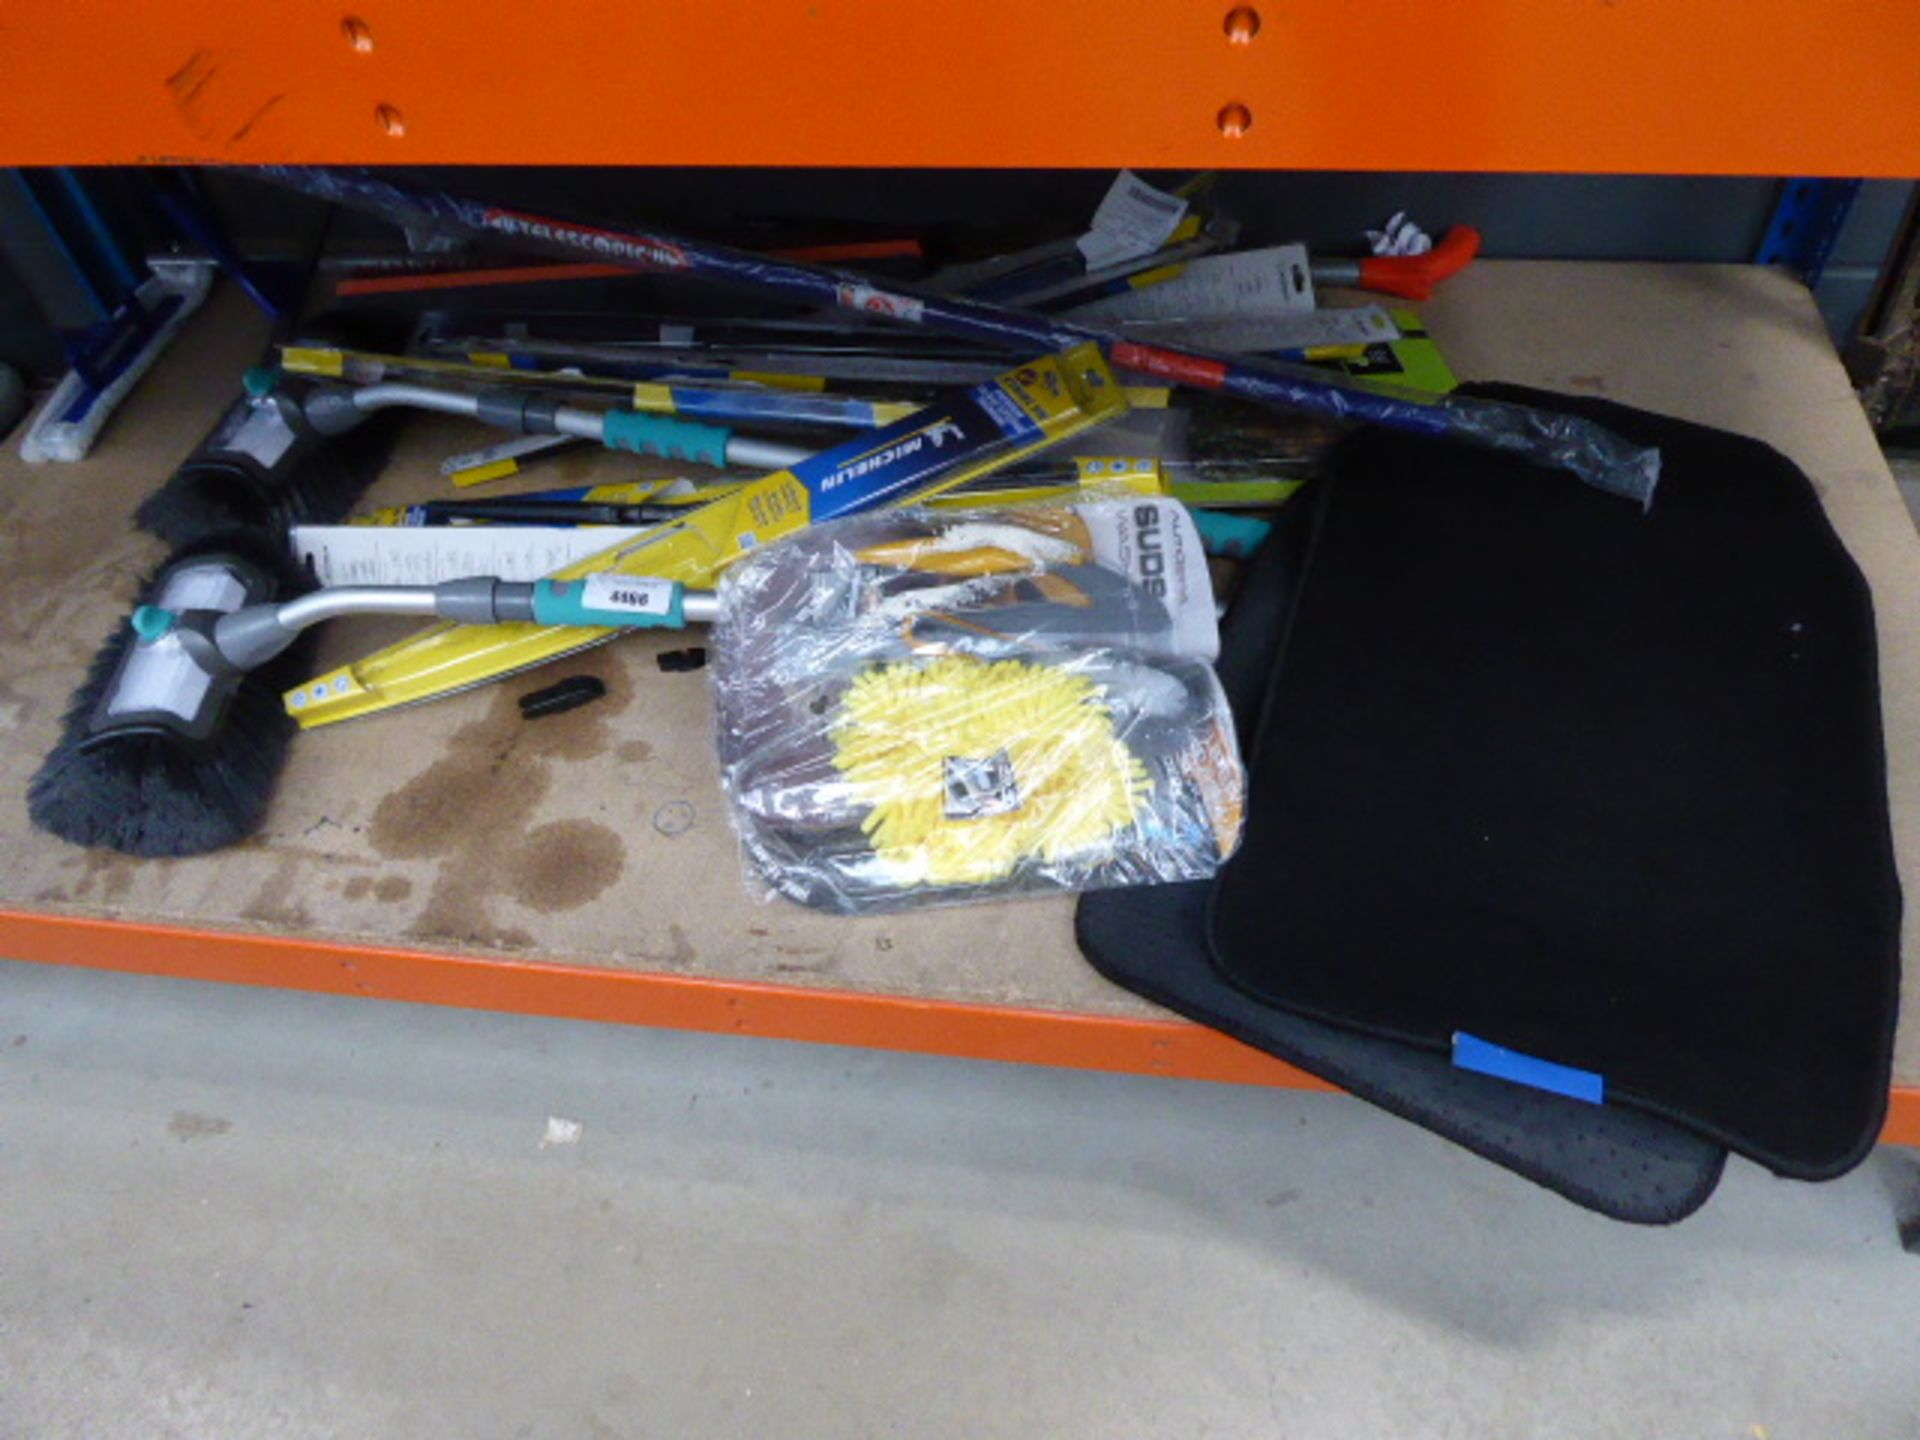 Lot 4466 - 4567 Underbay containing wash brushes, car mats, wiper blades etc